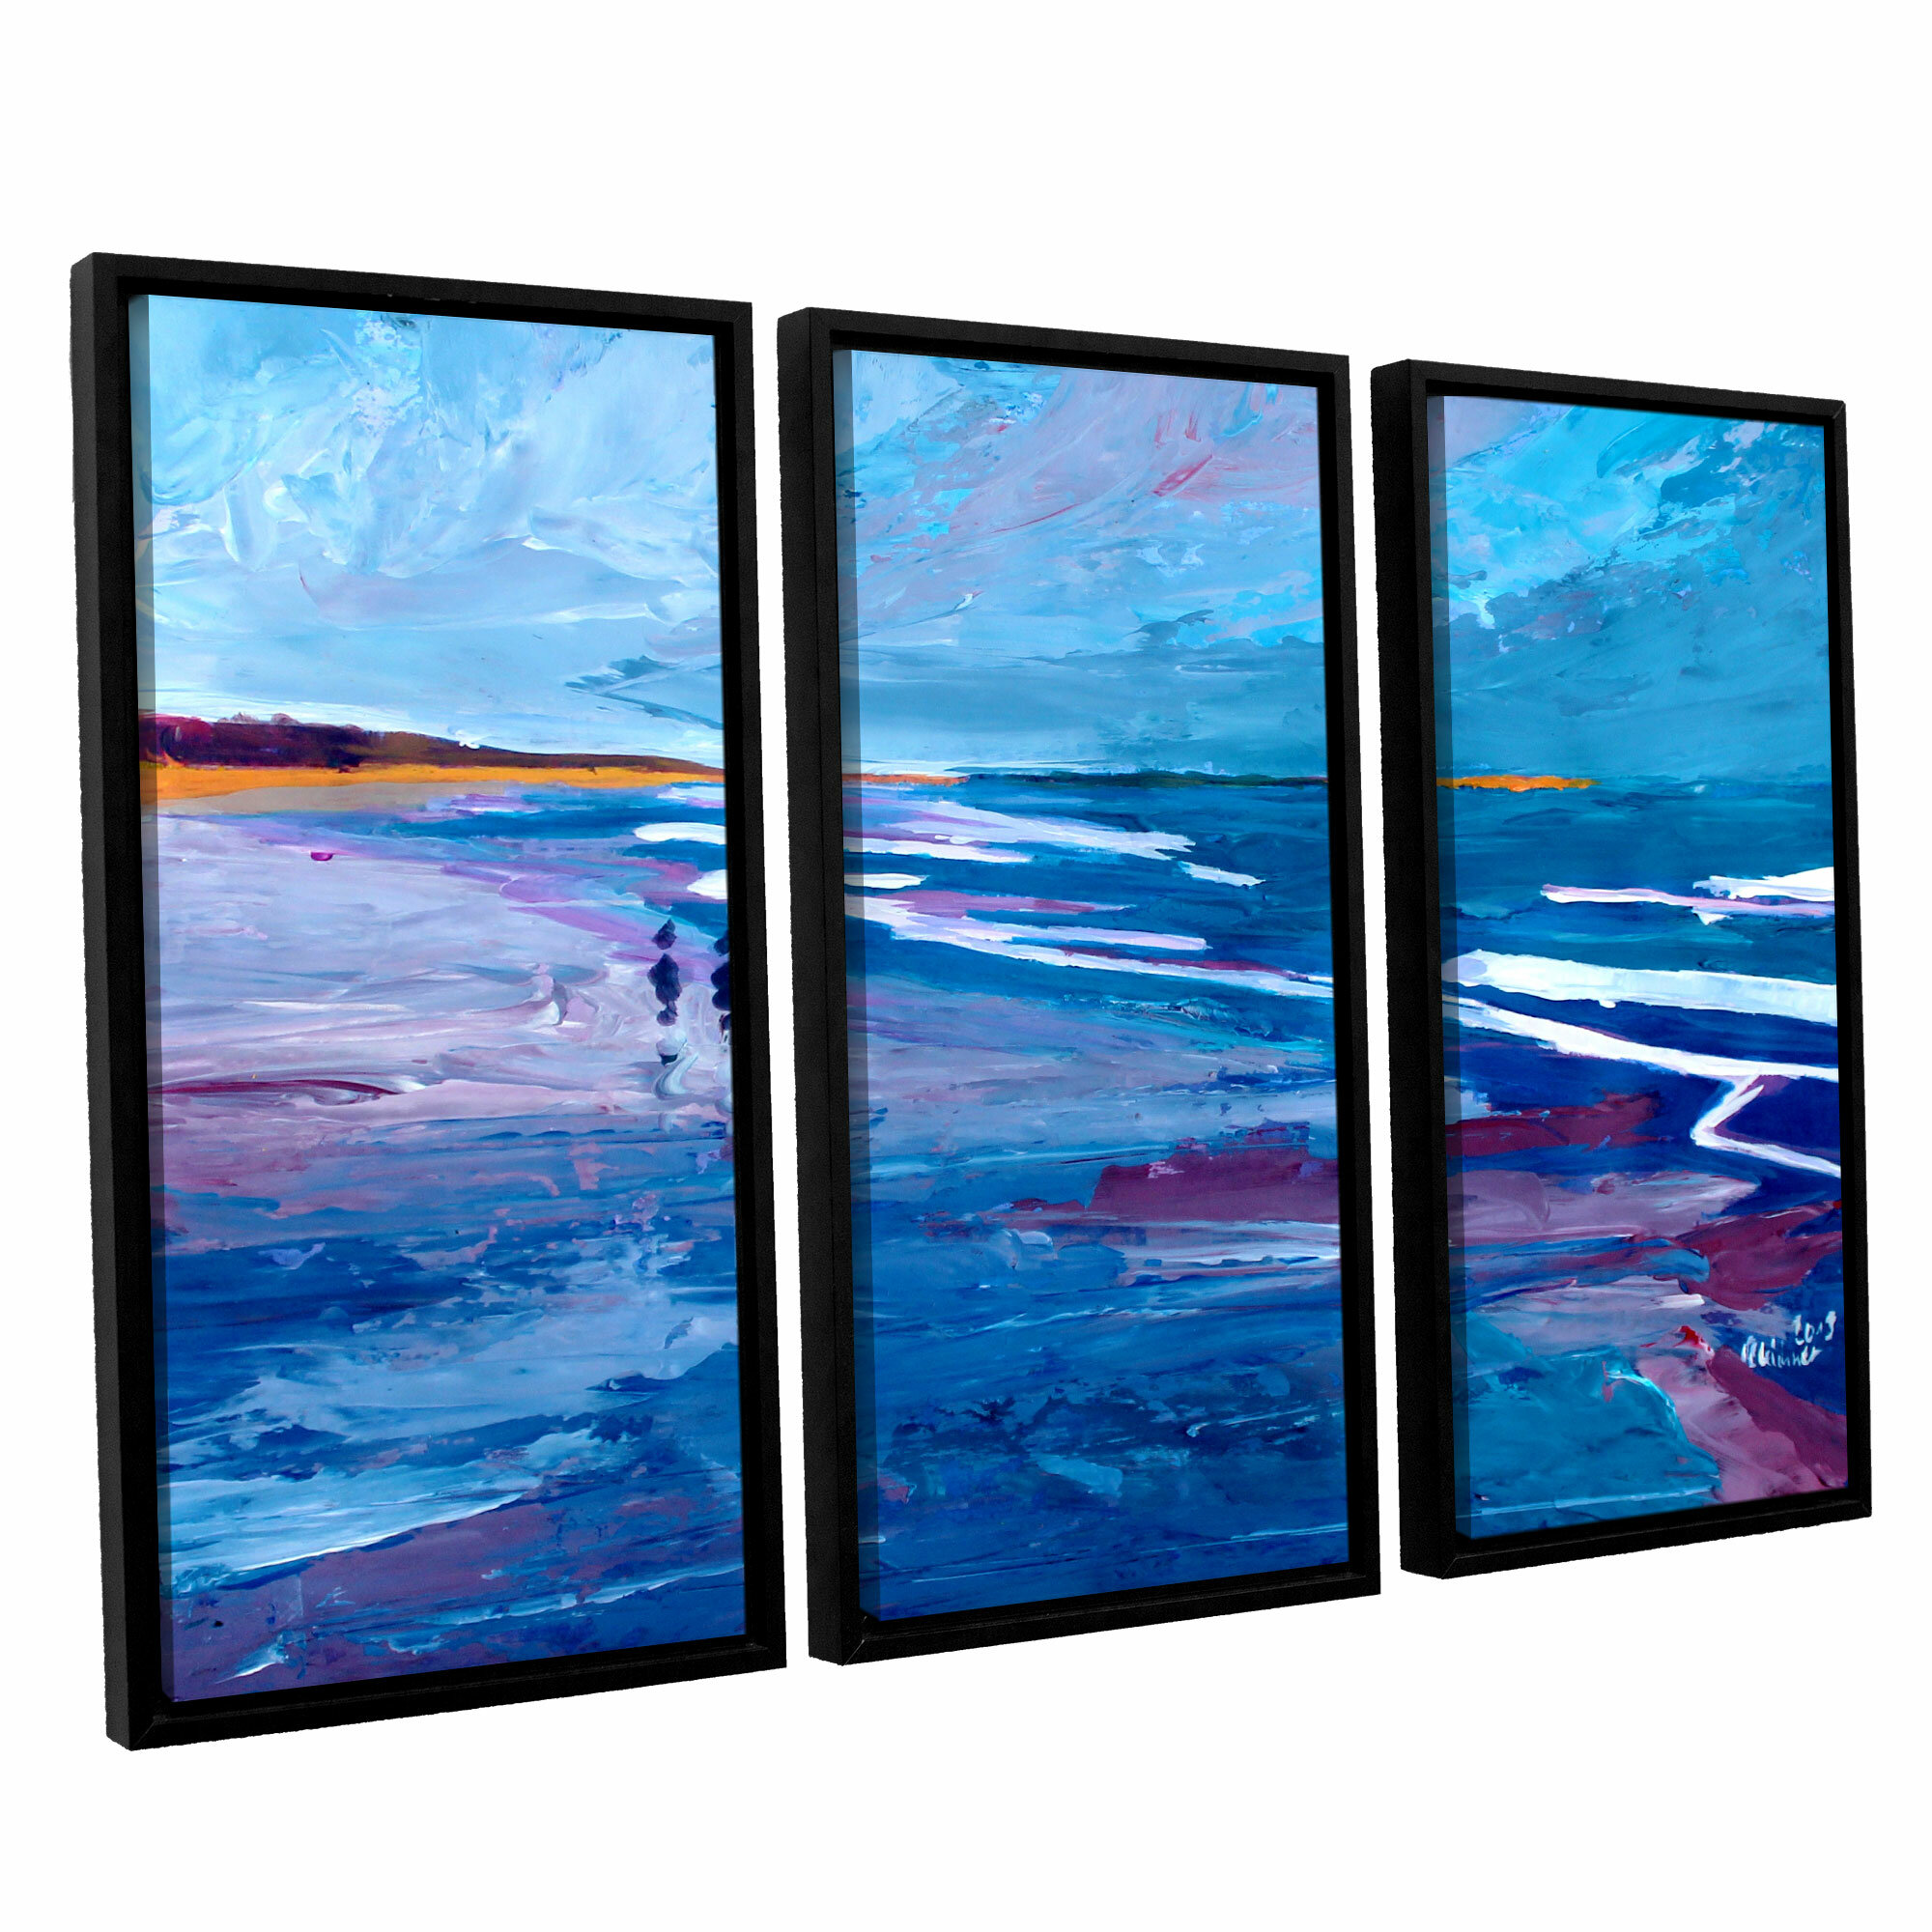 Artwall Seascape Near Big Sur By Marcus Martina Bleichner 3 Piece Framed Painting Print Set Wayfair